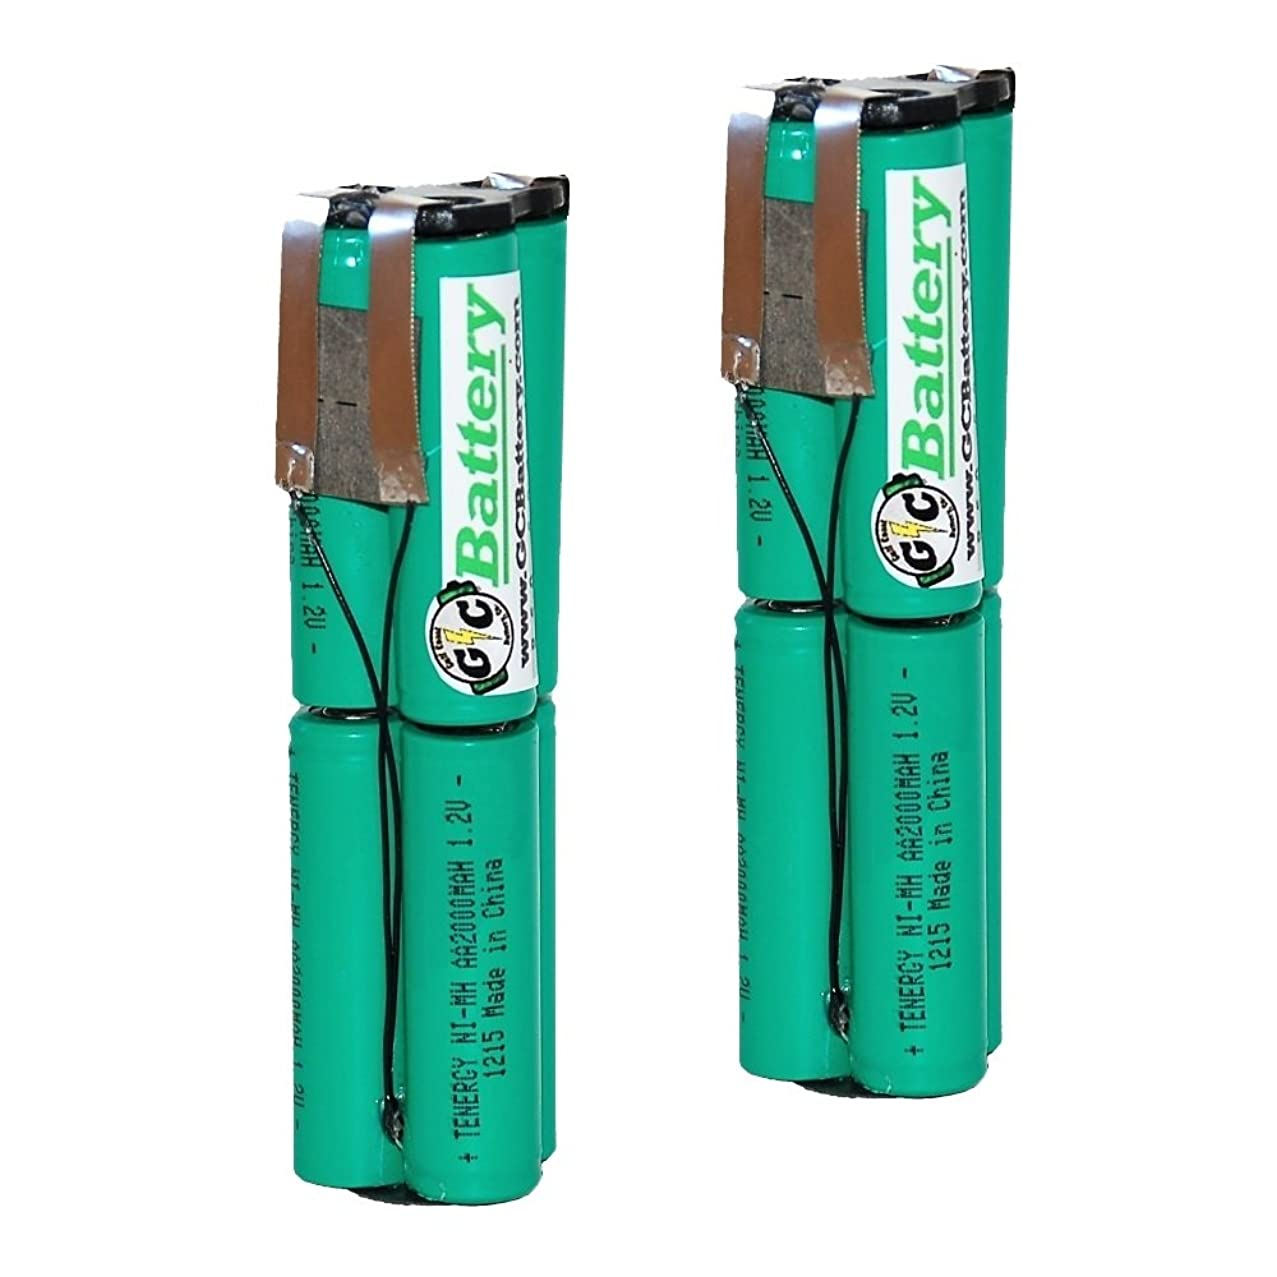 2PK G/C Battery Co. Compatible UPGRADED 2000mAh NiMH Replacement Battery Internals for Snap-On 7.2V CTB5172 | CTB5172B